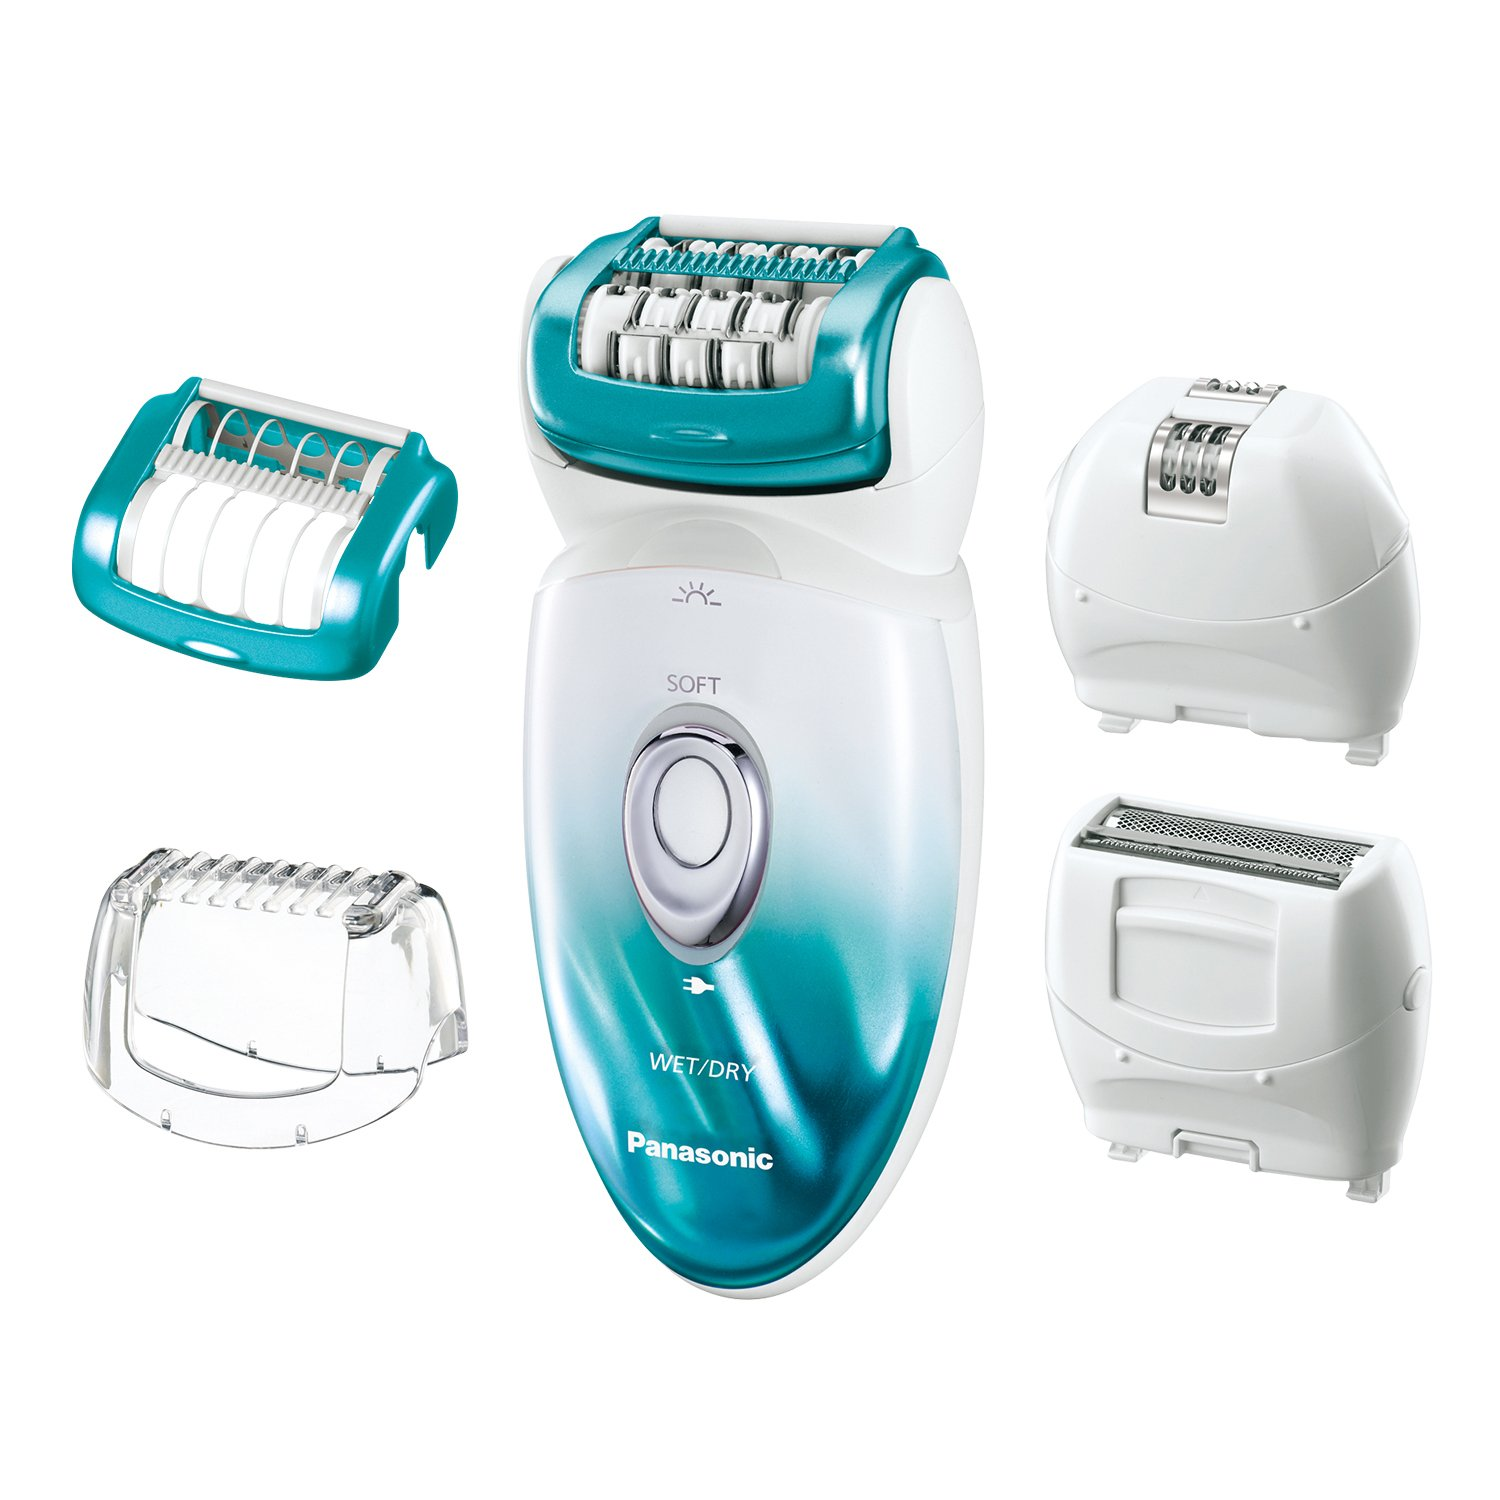 Panasonic ES-ED70-G Multi-Functional Wet/Dry Shaver and Epilator for Women, with Five Hair Removal Attachments and Travel Pouch by Panasonic